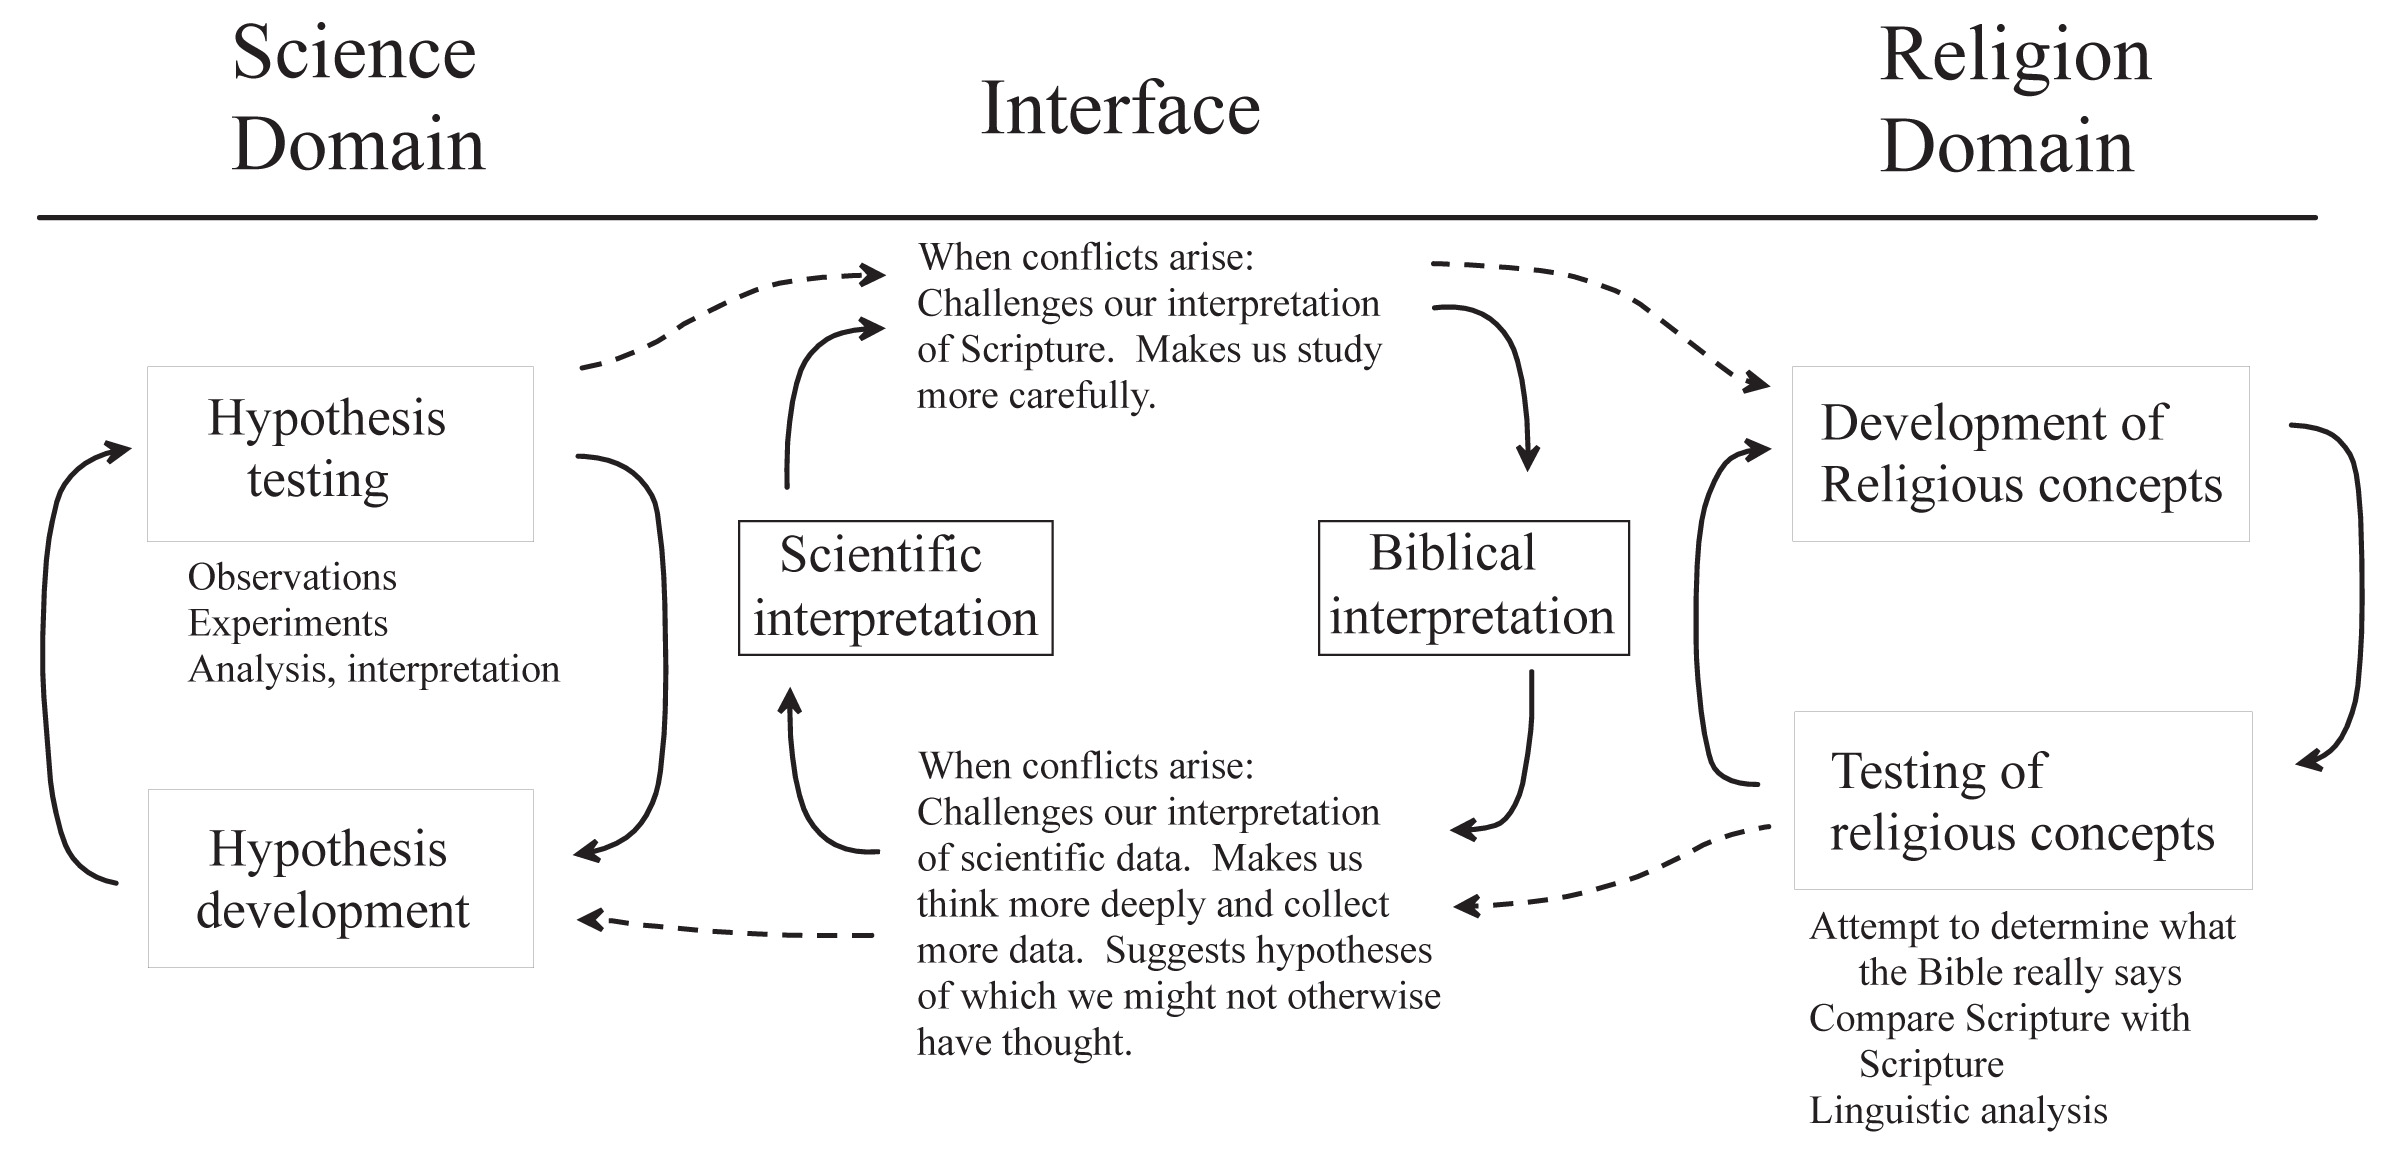 Freh illustrations school of medicine loma linda university an approach to the relationship between science and religion that provides constructive interaction between them without inappropriate interference of one ccuart Choice Image